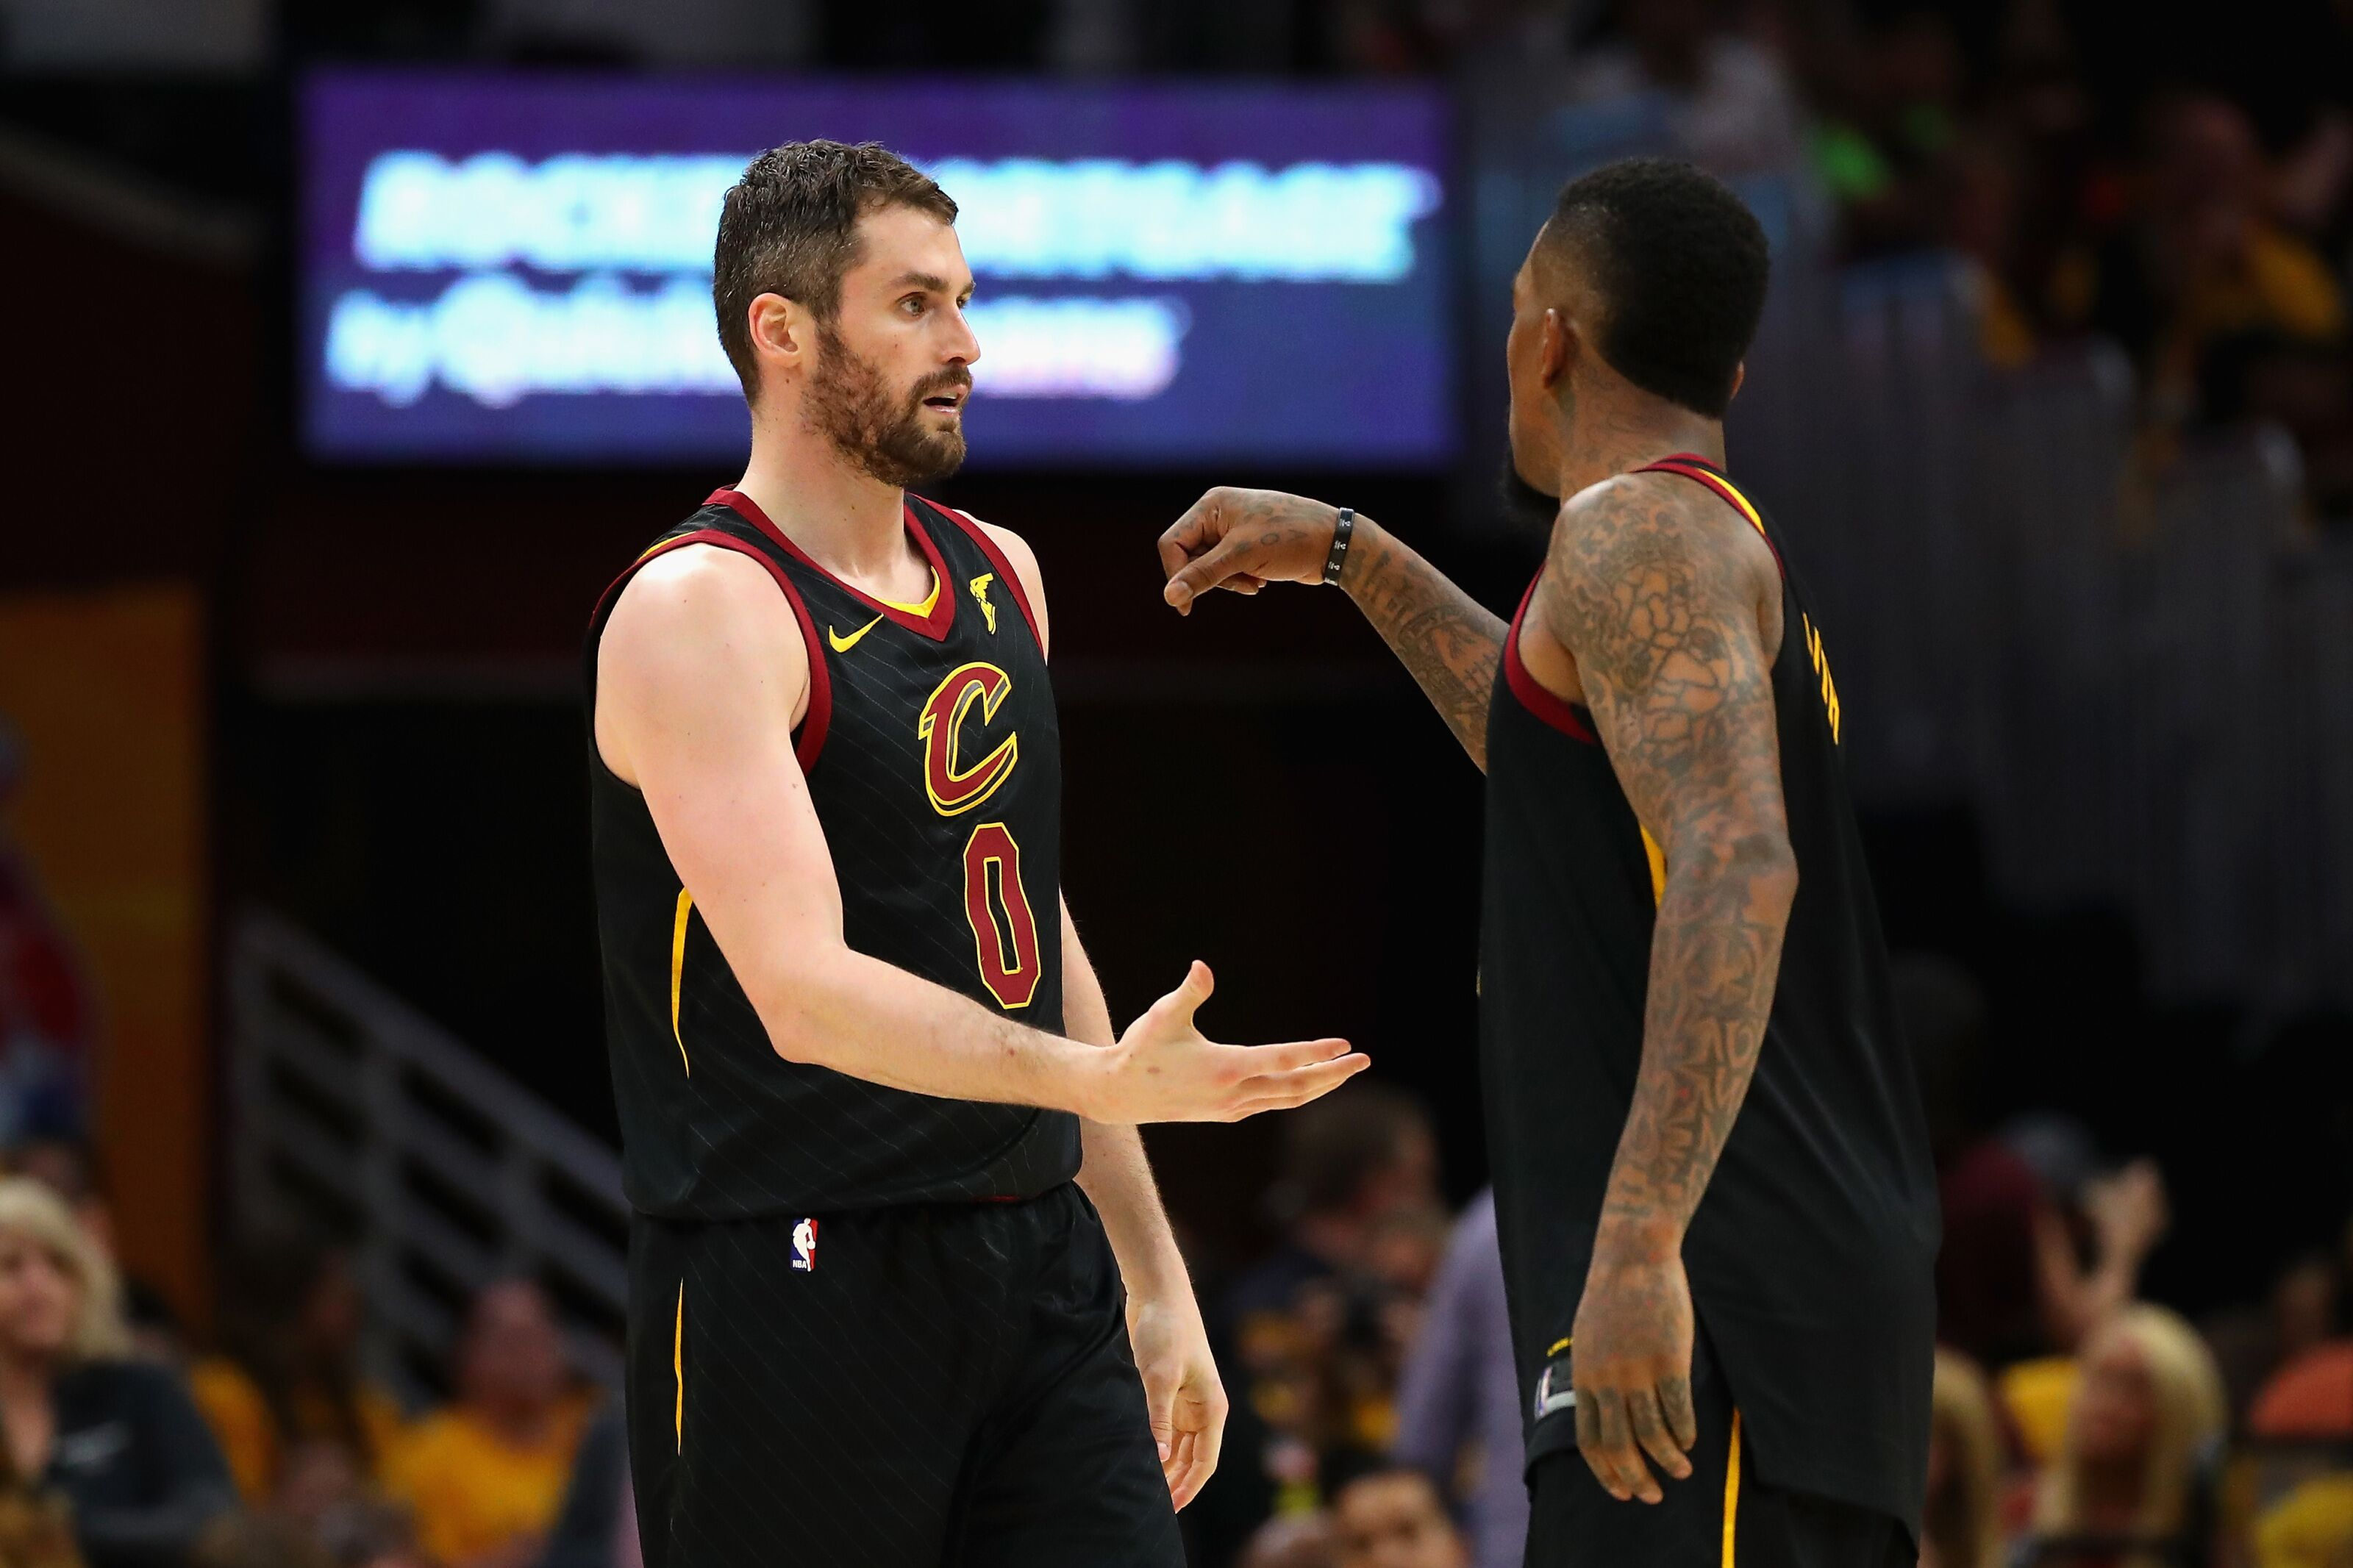 Cavs: Kevin Love's right in stressing how J.R. Smith was big championship piece